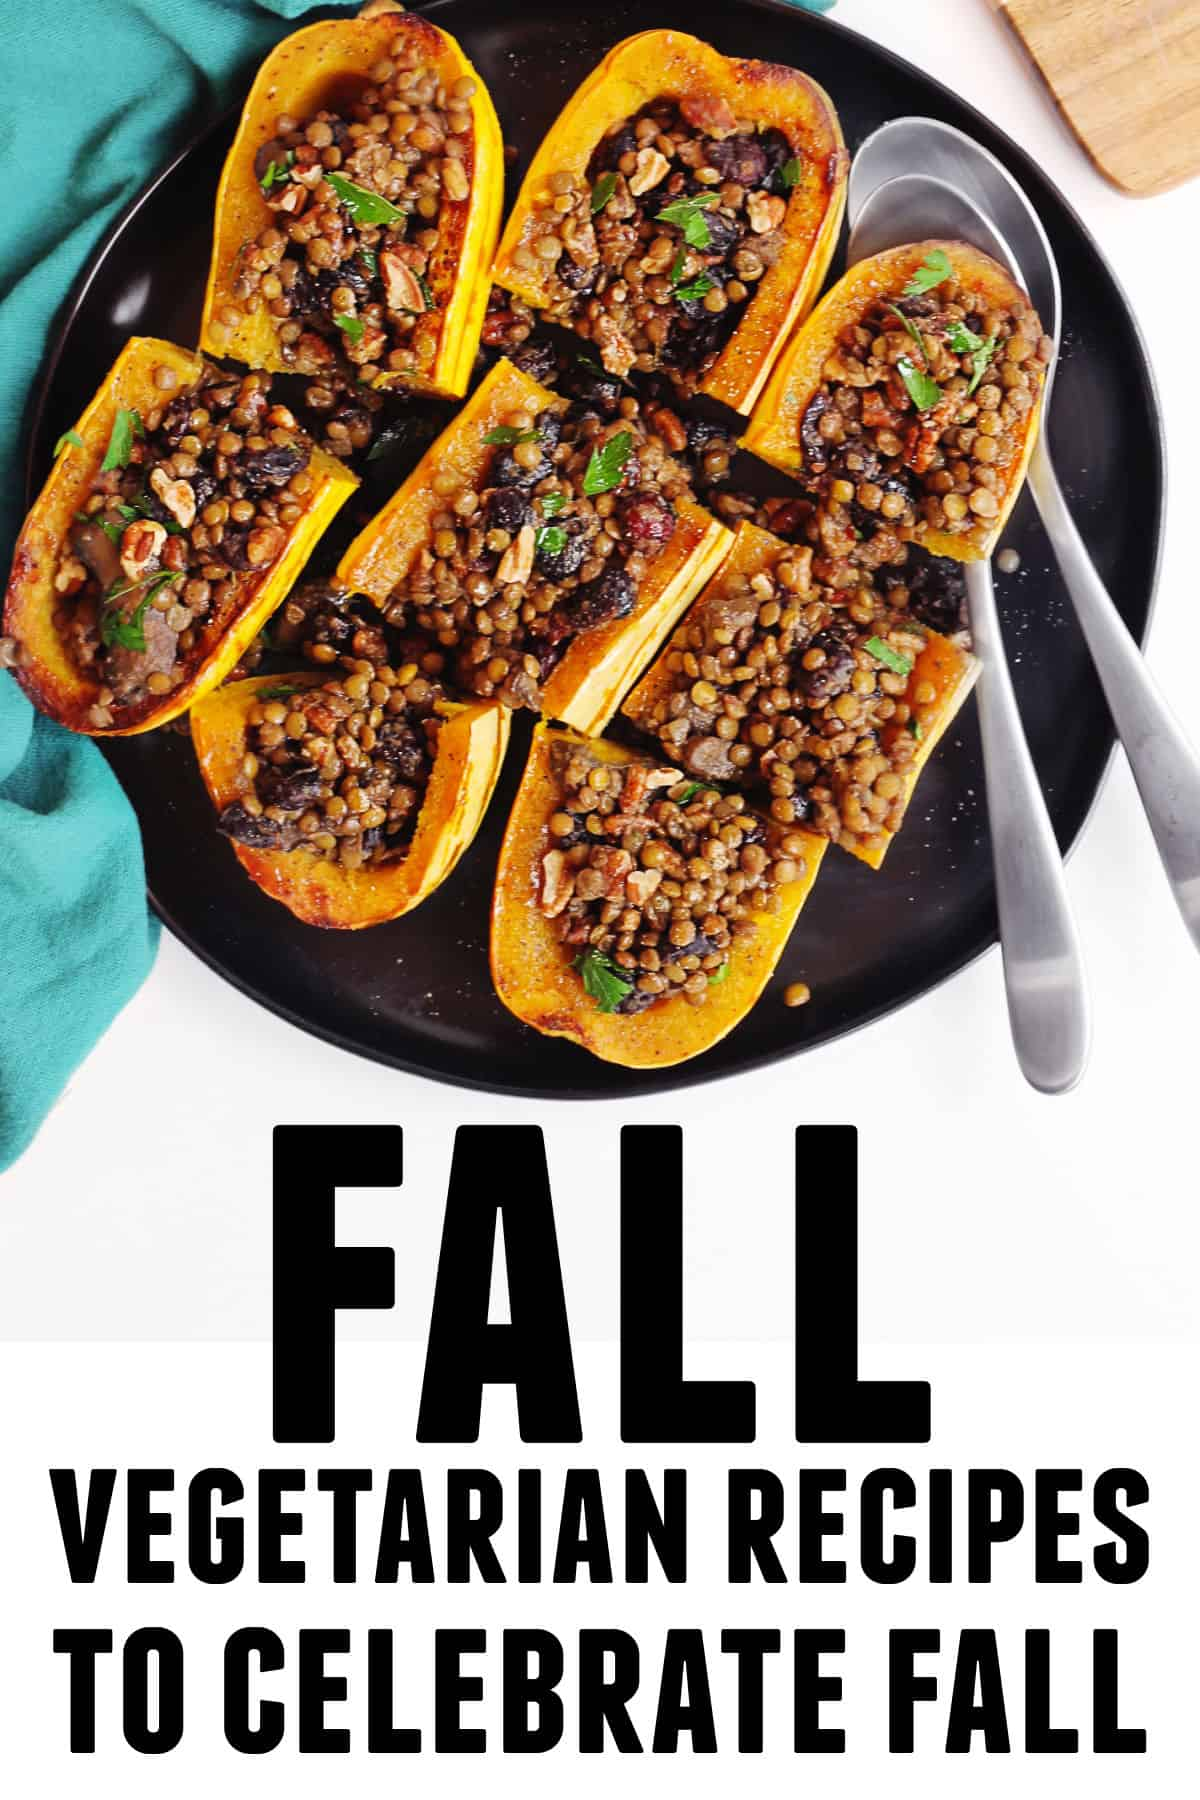 Fall vegetarian recipes to celebrate fall graphic with stuffed squash